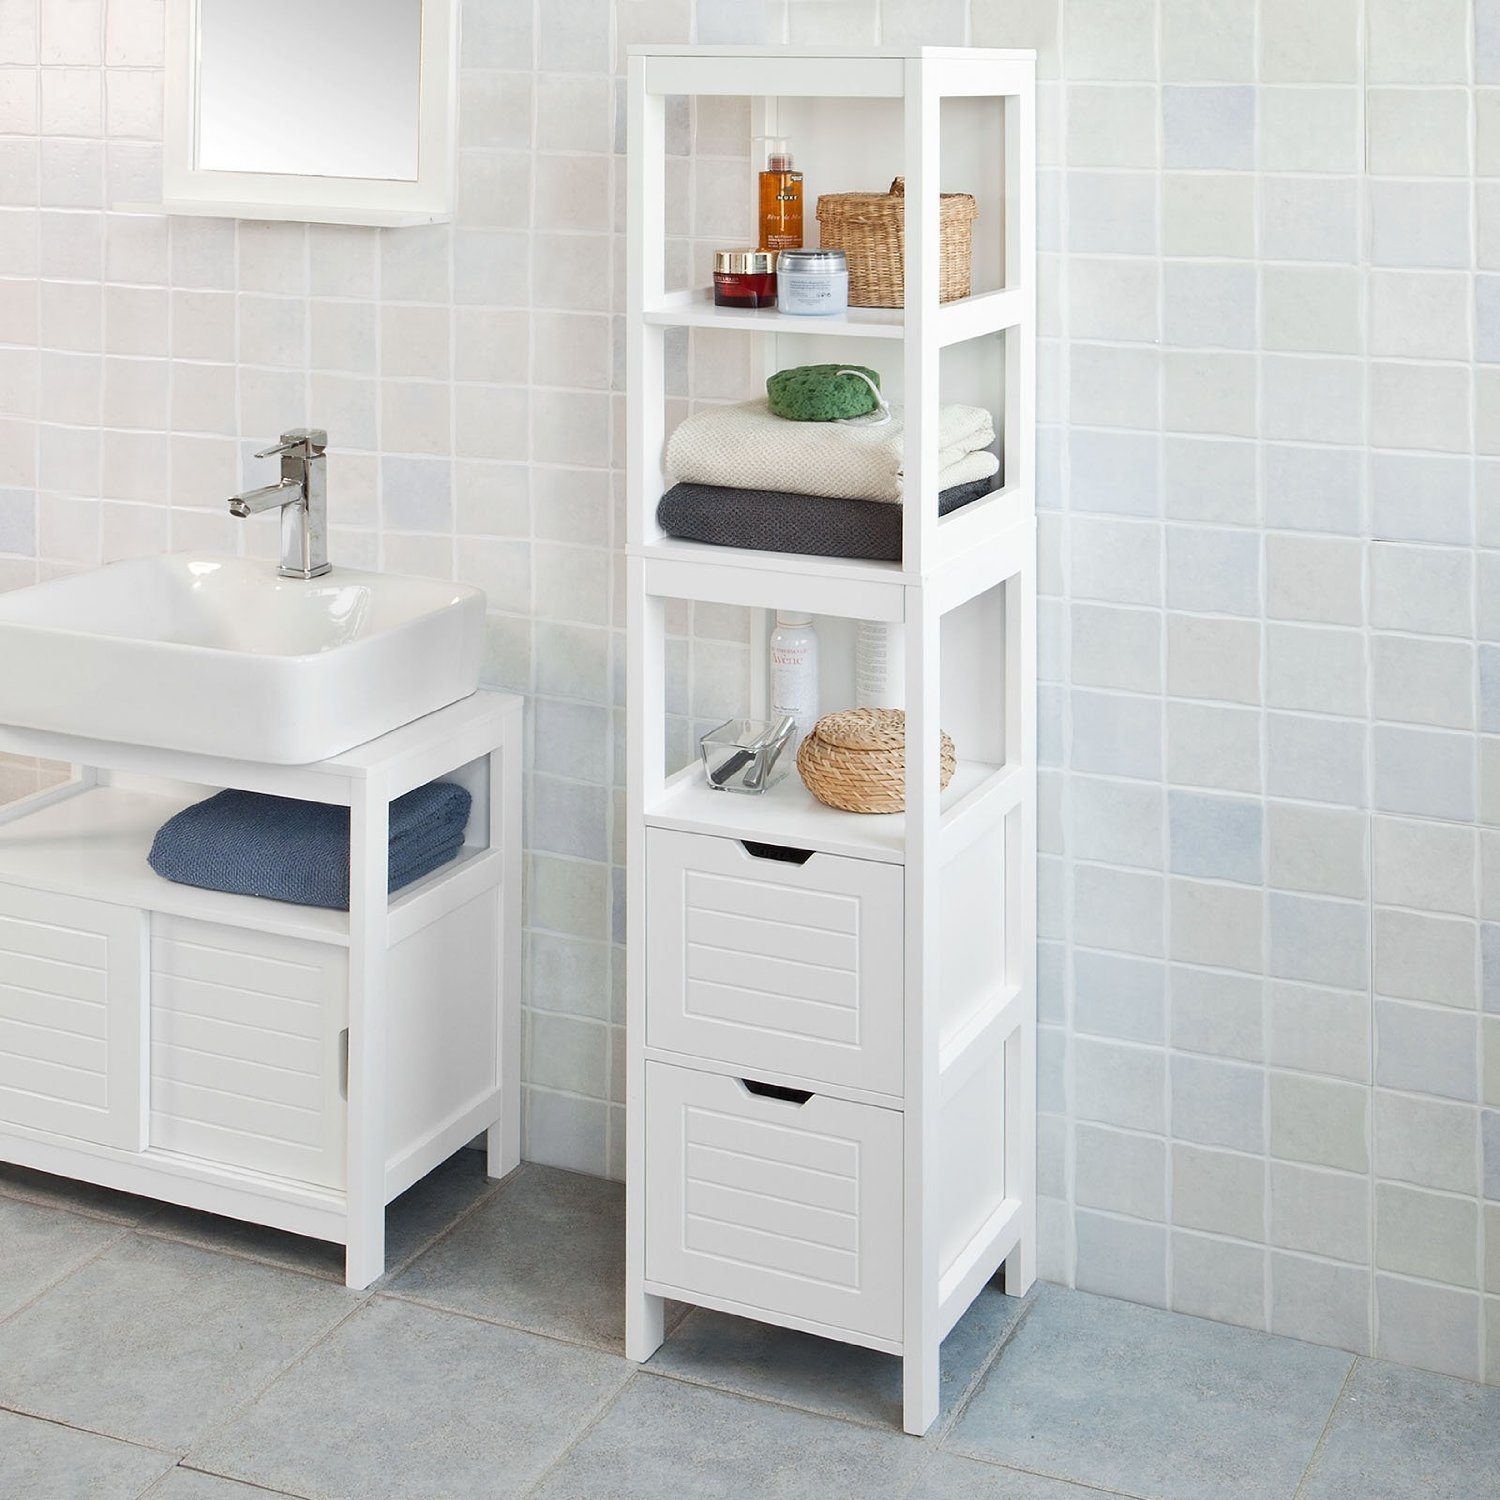 Sobuy Frg126 W White Floor Standing Tall Bathroom Storage Cabinet With 3 Shelves And 2 Drawers within proportions 1500 X 1500